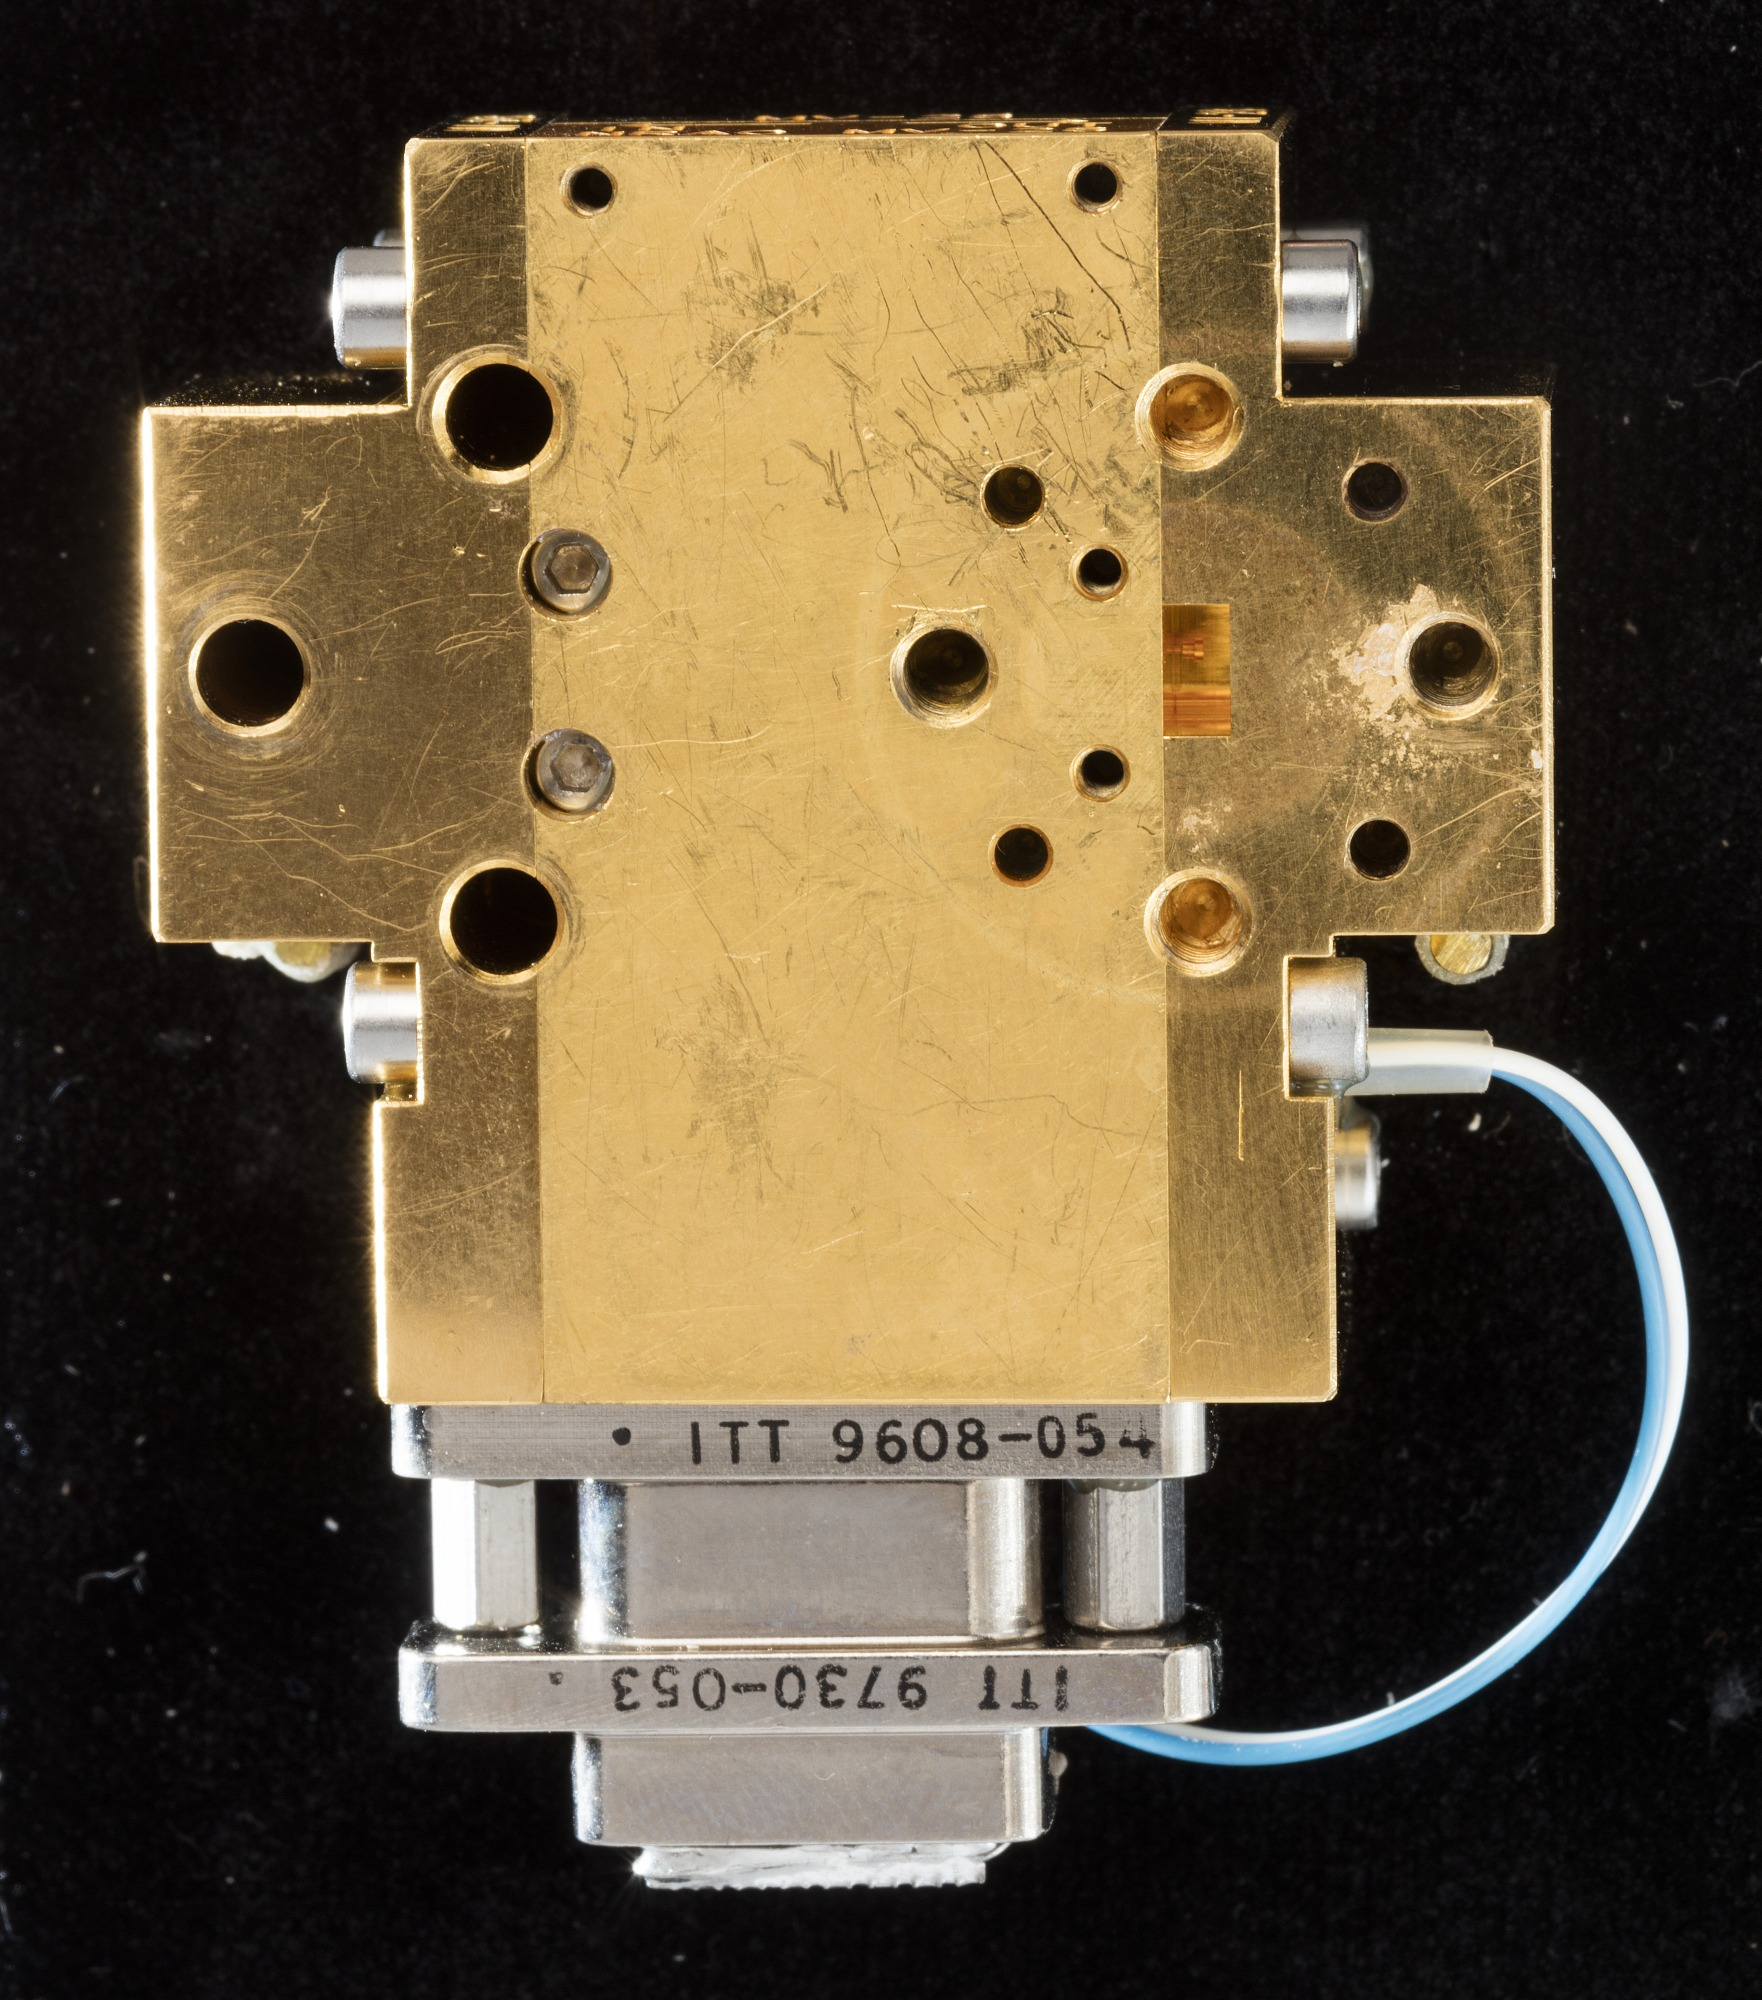 Image of : Amplifier, WMAP Cryogenic InP HEMT Low Noise Amplifier